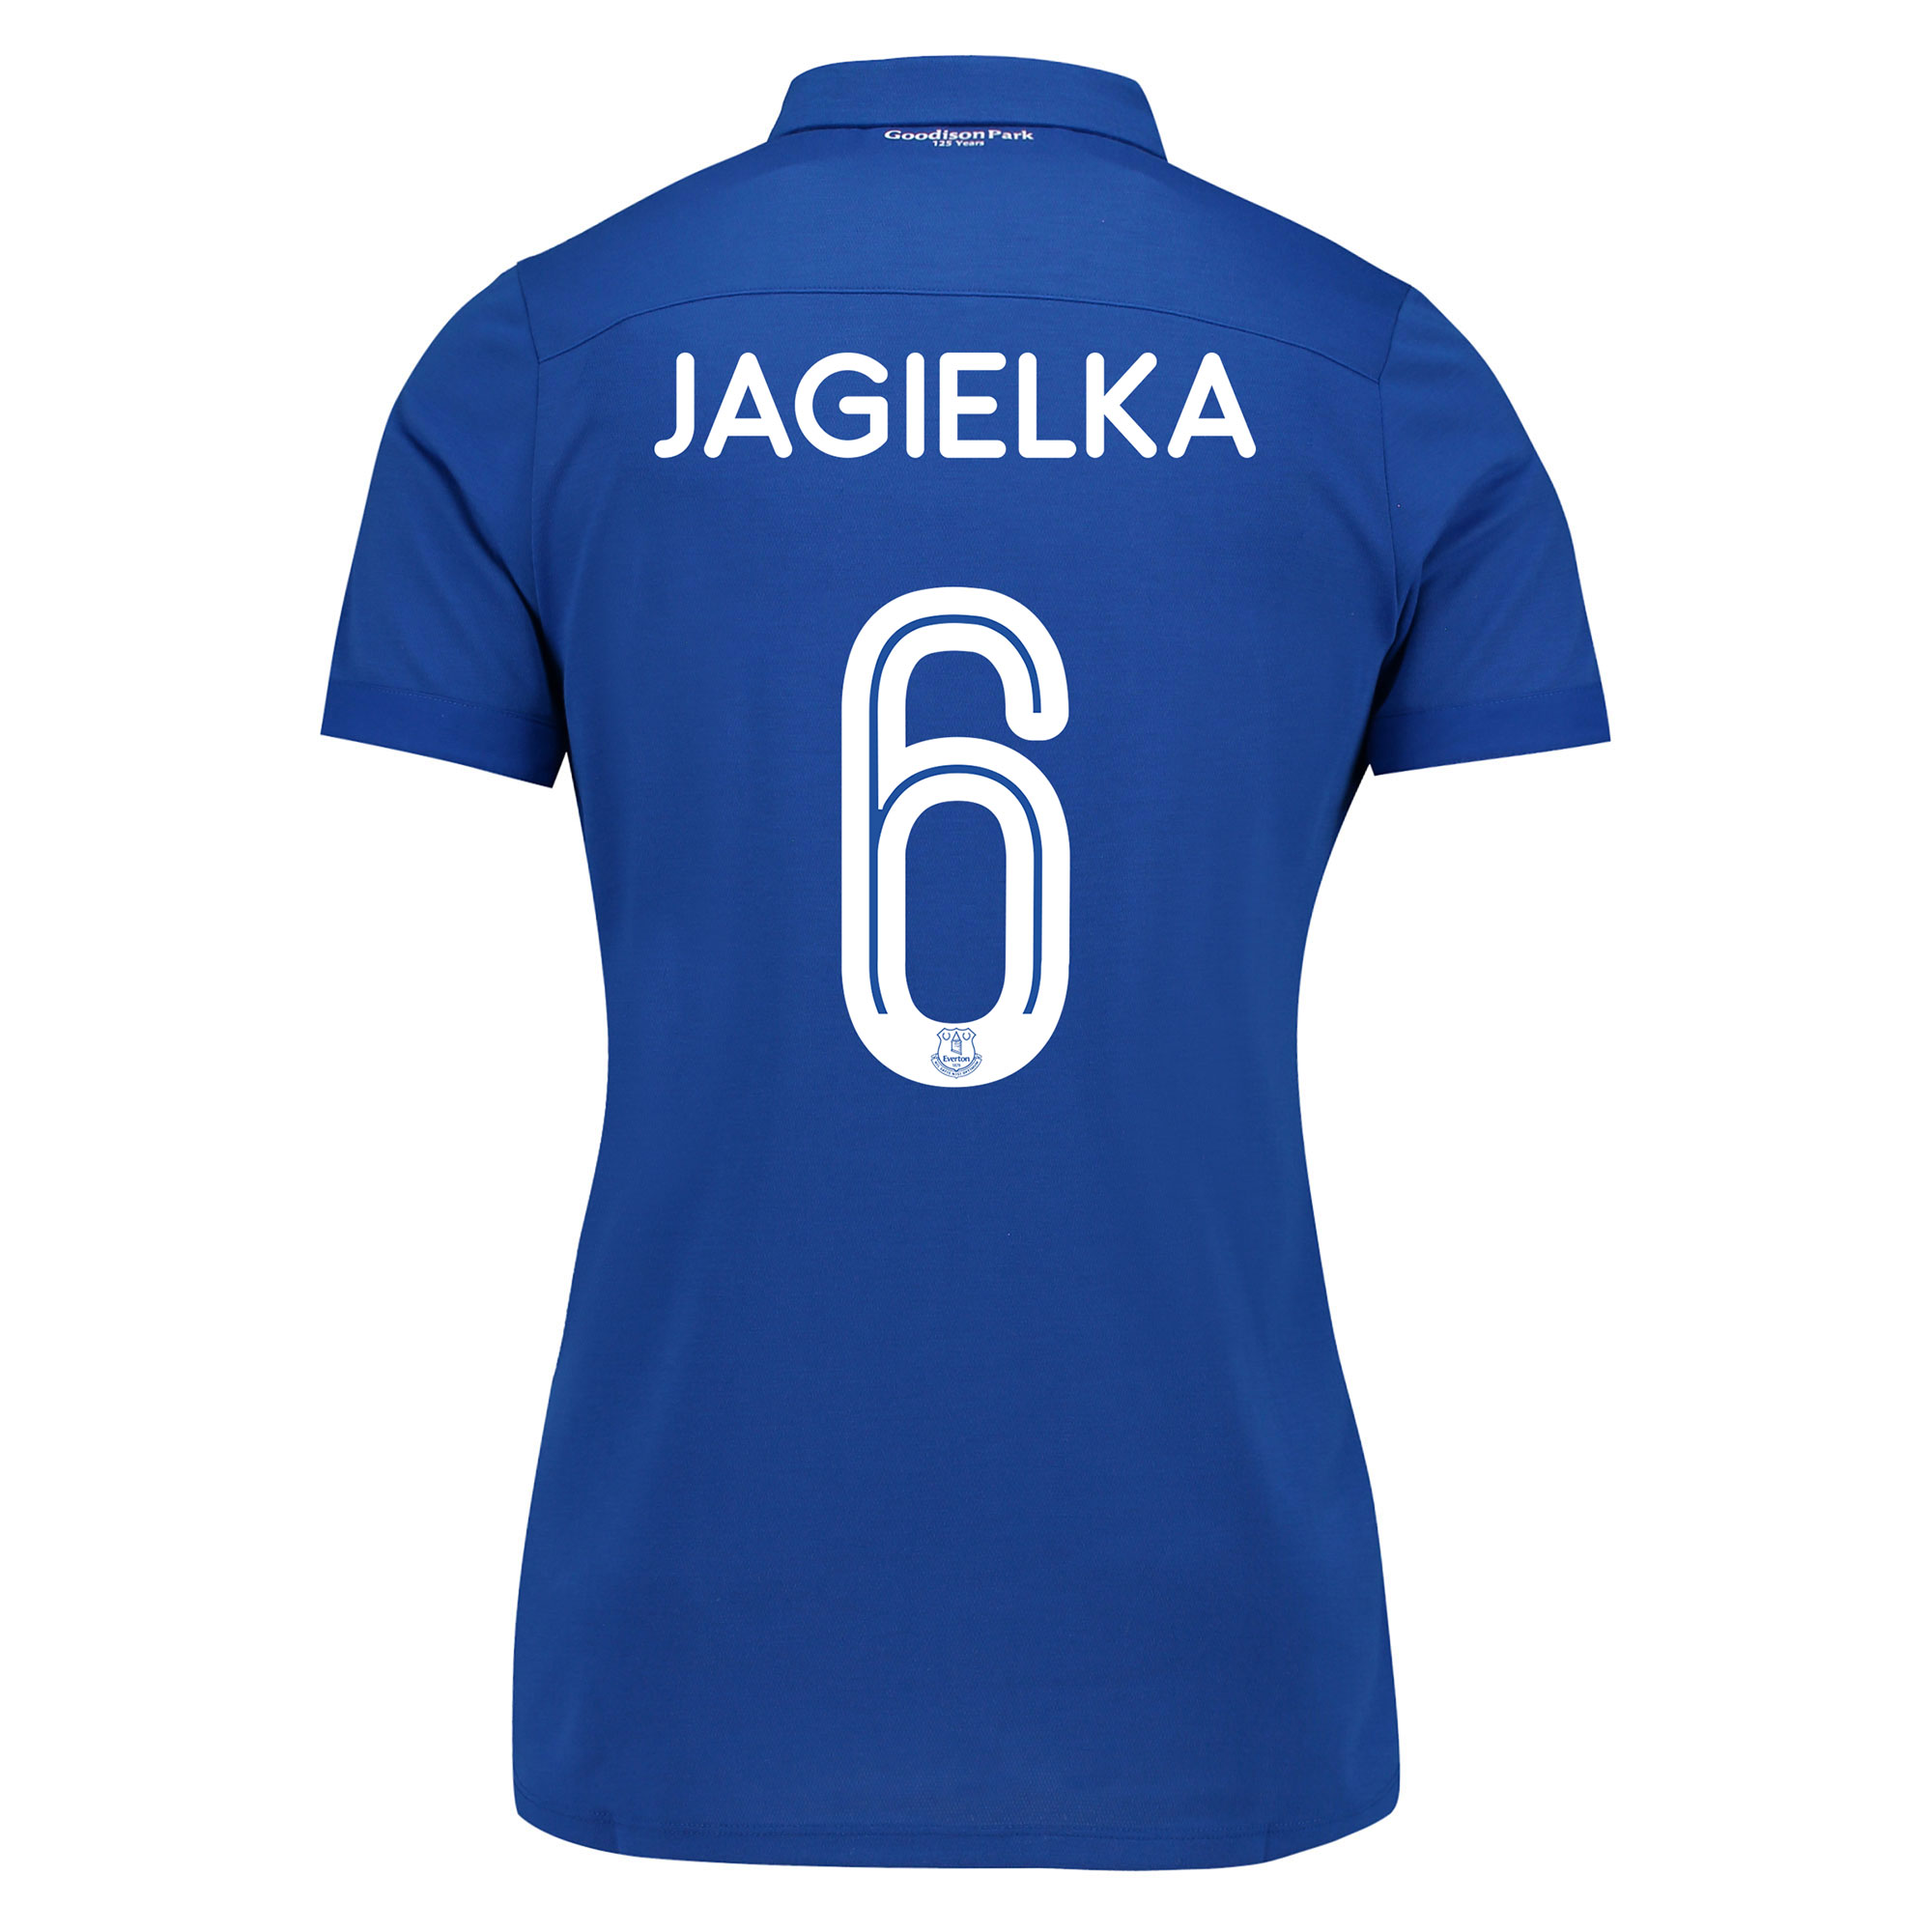 Image of Everton Commemorative Shirt - Womens with Jagielka 6 printing